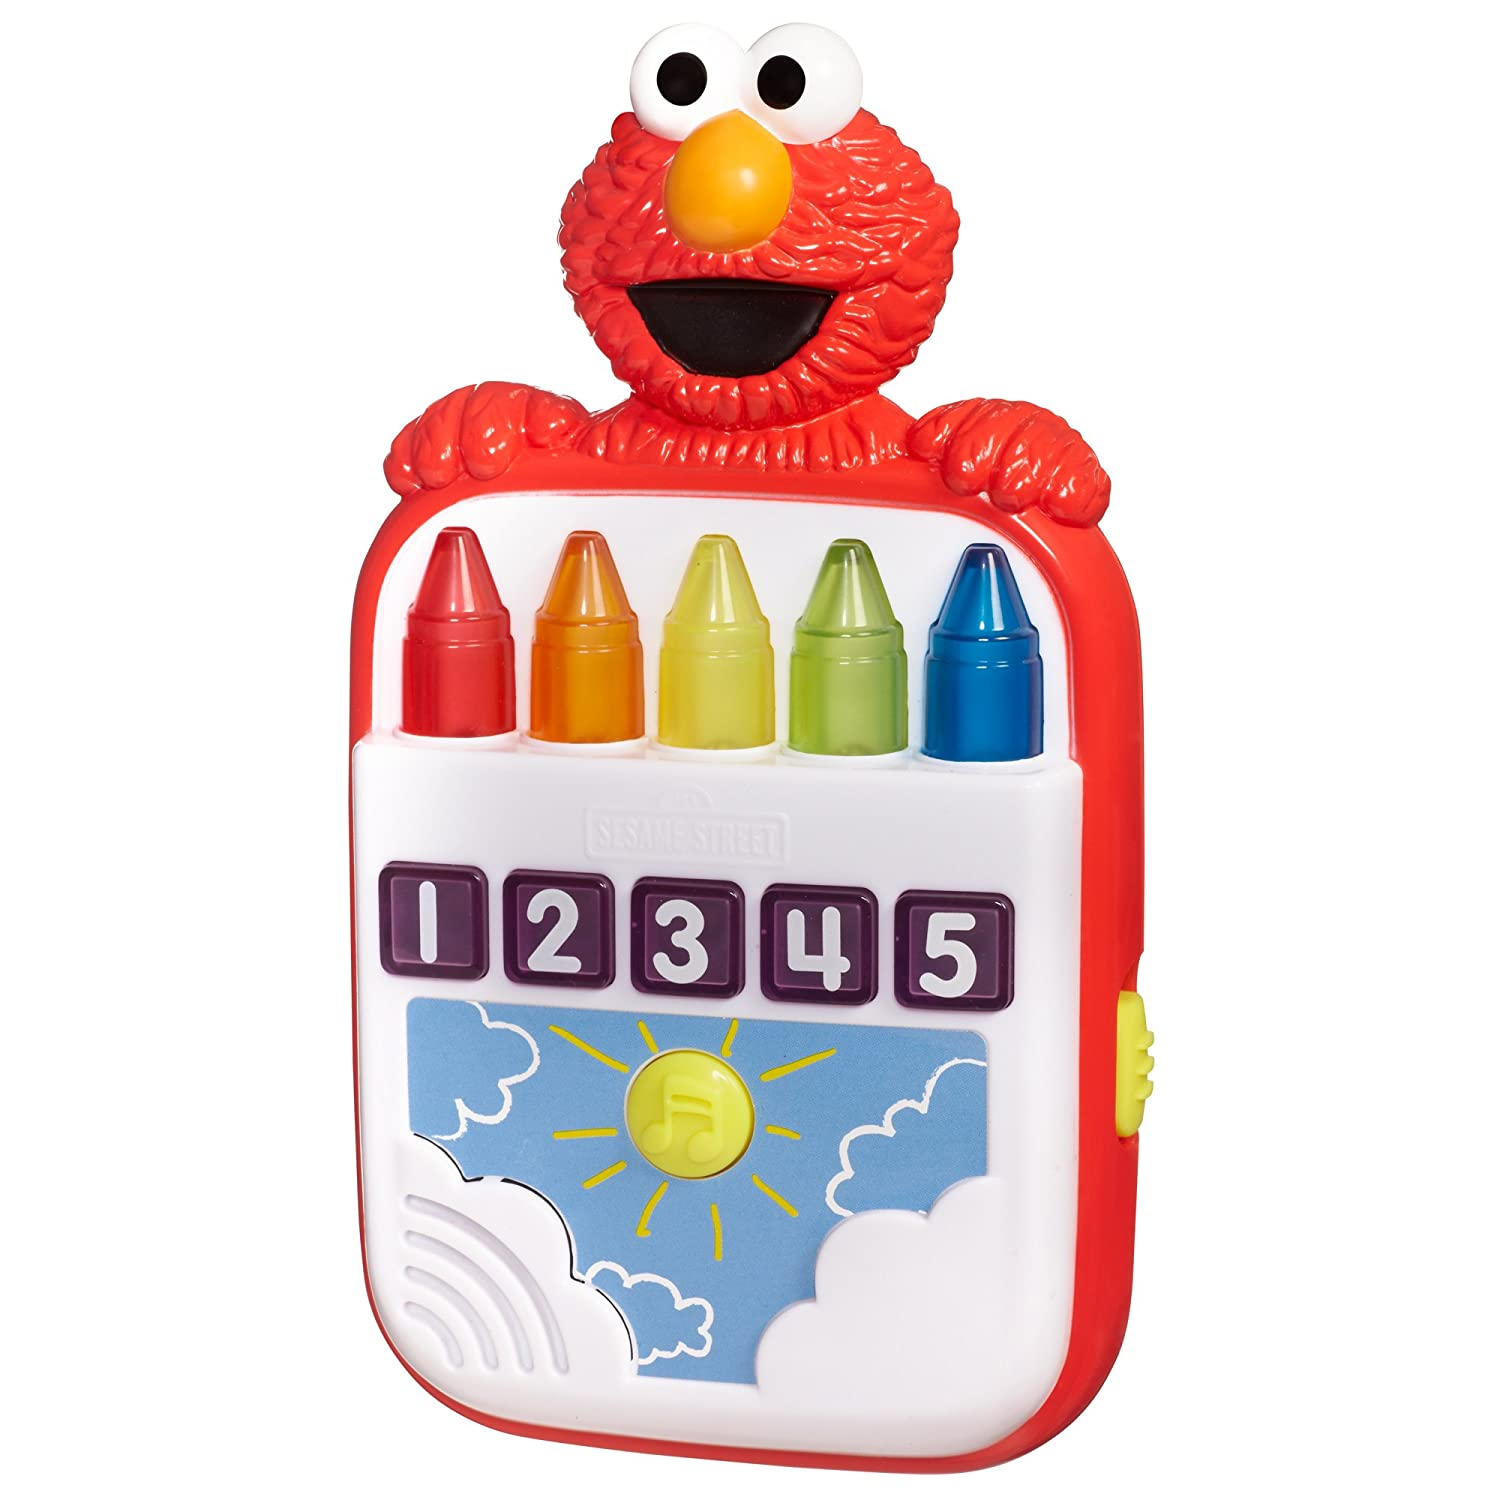 815kOuYFQcL._SL1500_ amazon com playskool sesame street steps to school elmo's count  at gsmx.co